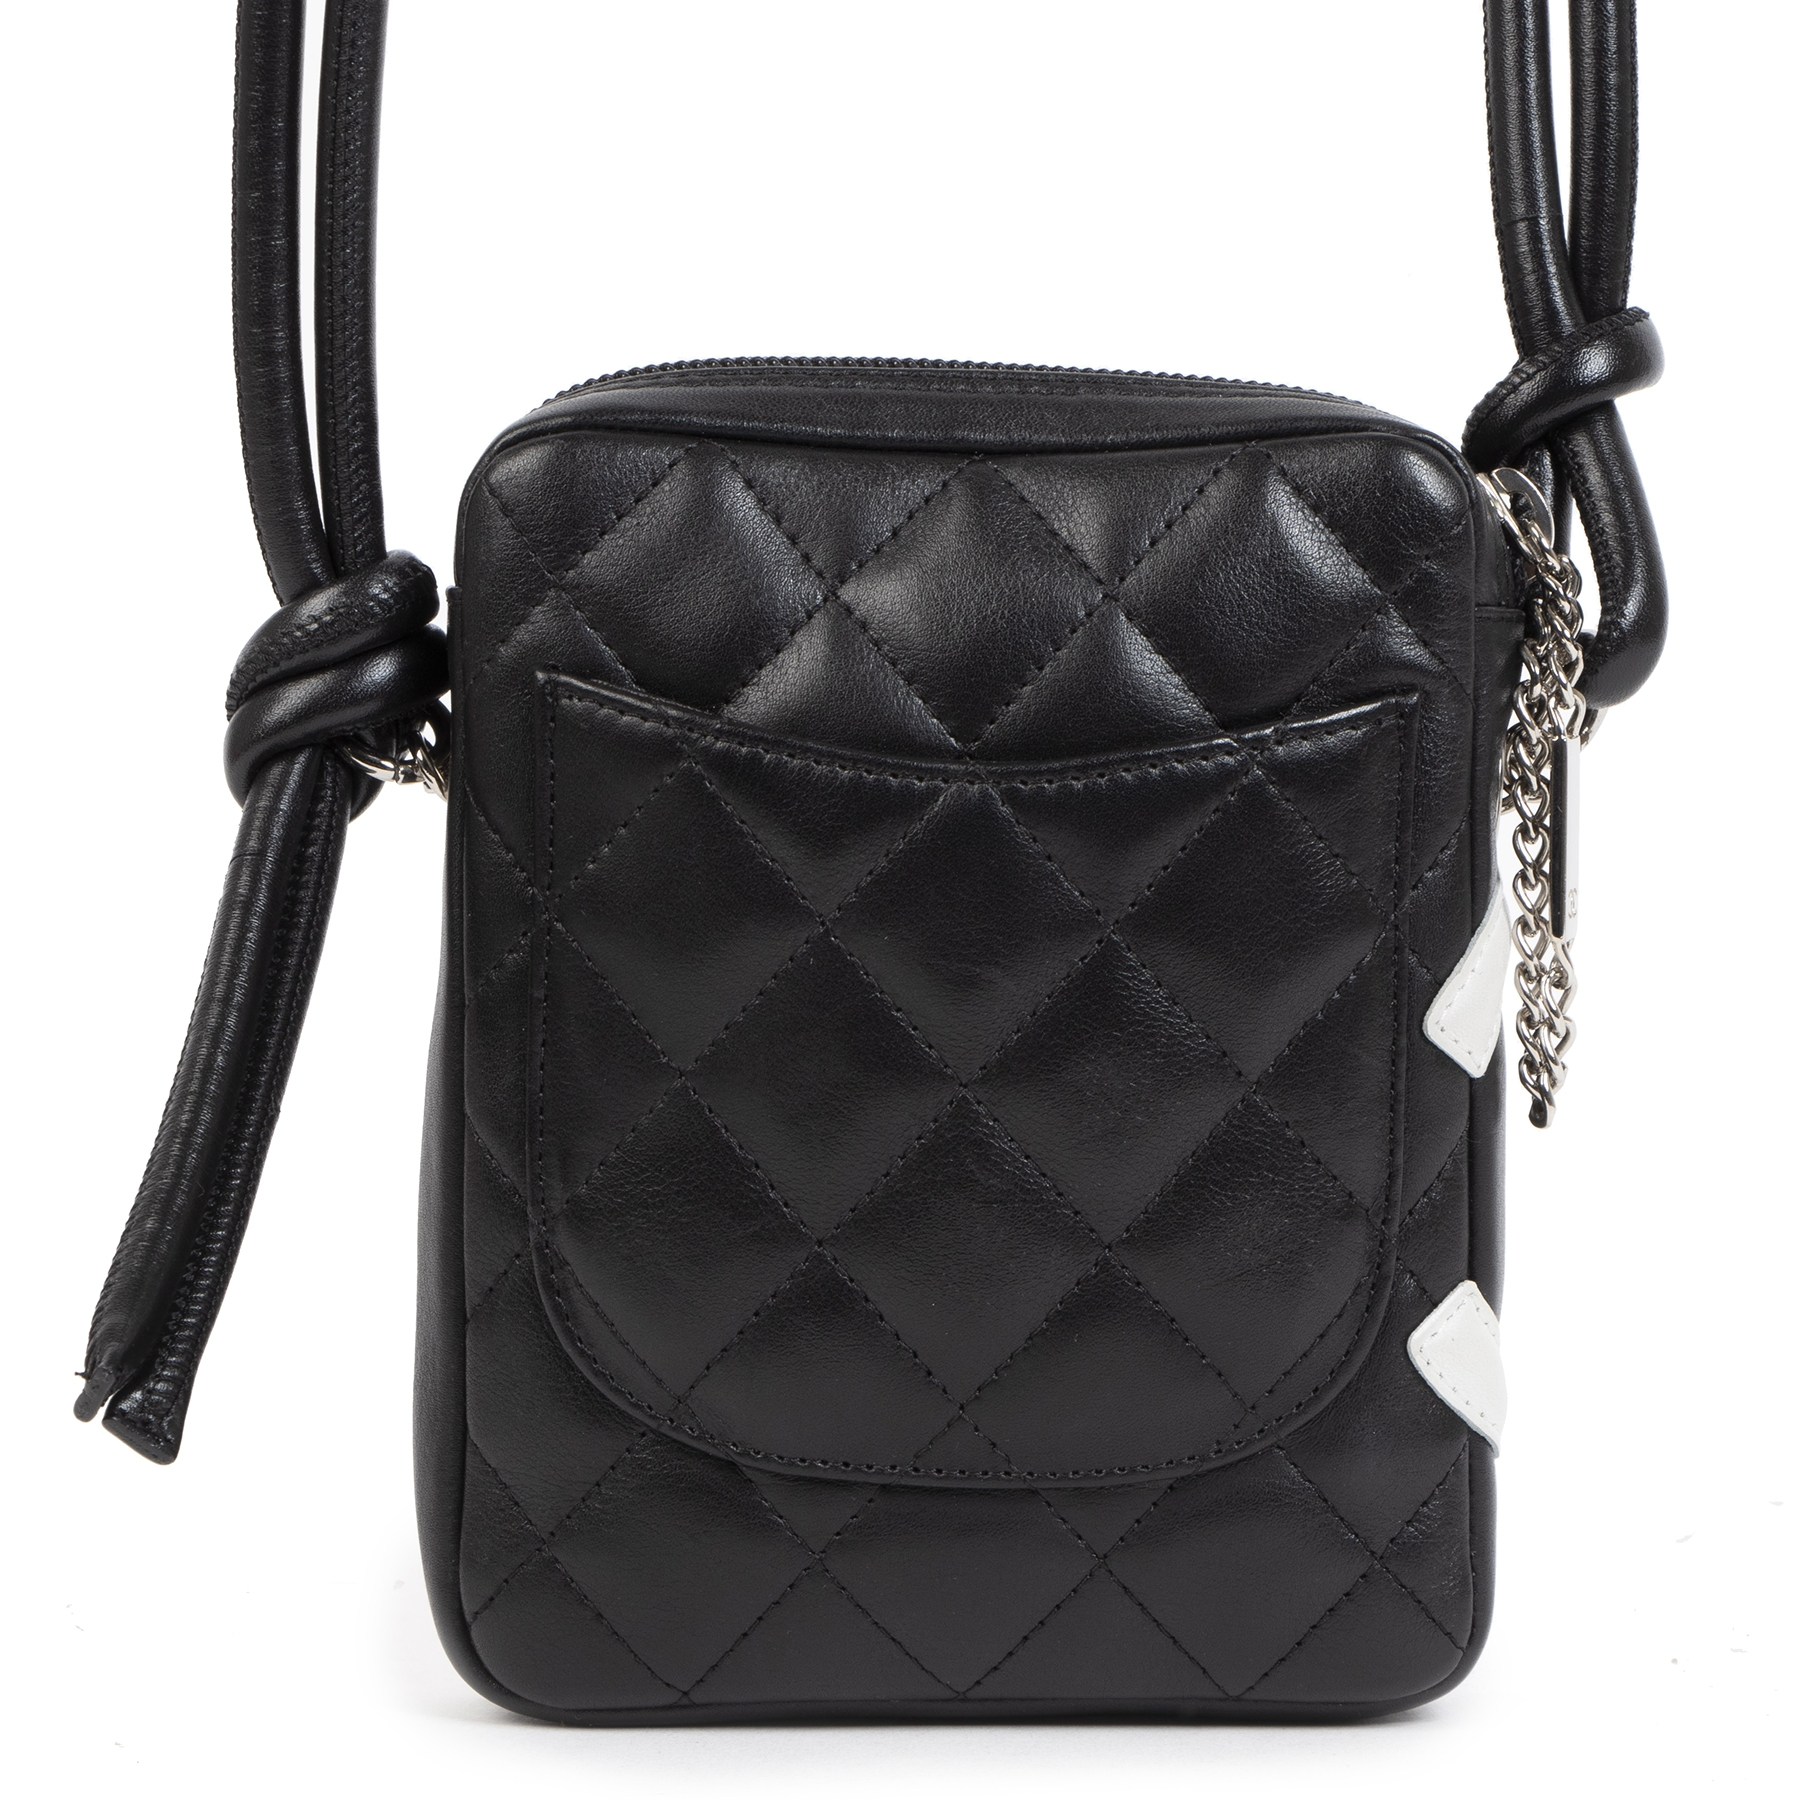 Chanel Cambon Crossbody Bag Quilted Leather Small Bag